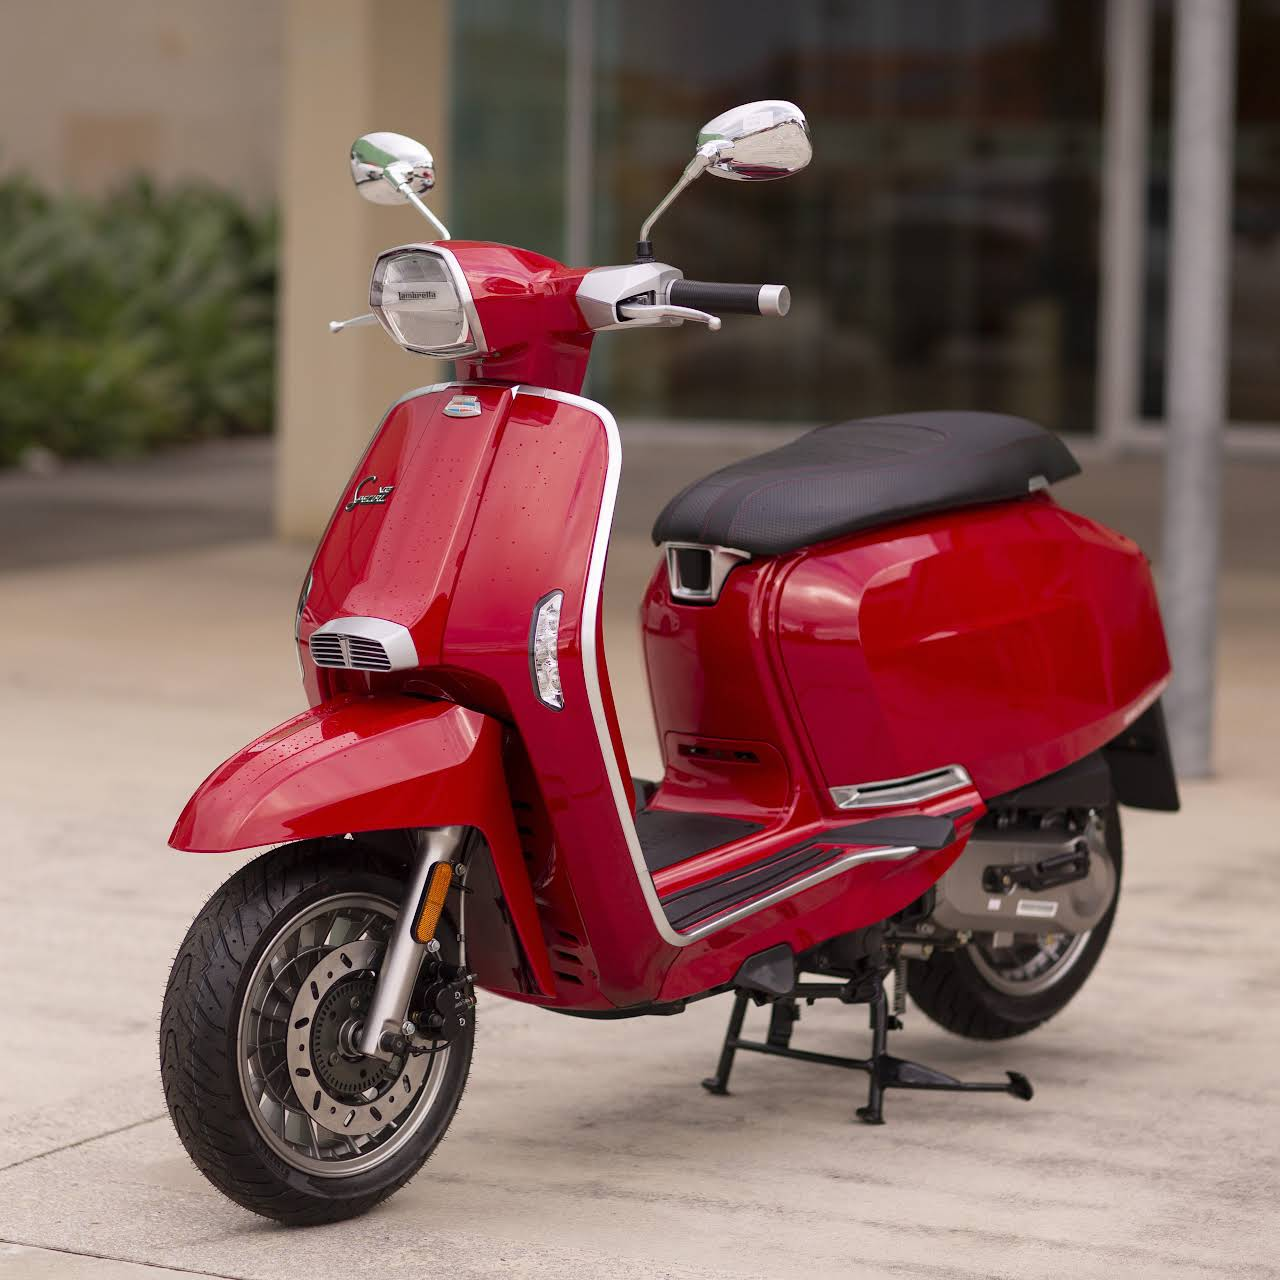 Ace Scooters Motorcycles Motor Scooter Dealer In Balcatta